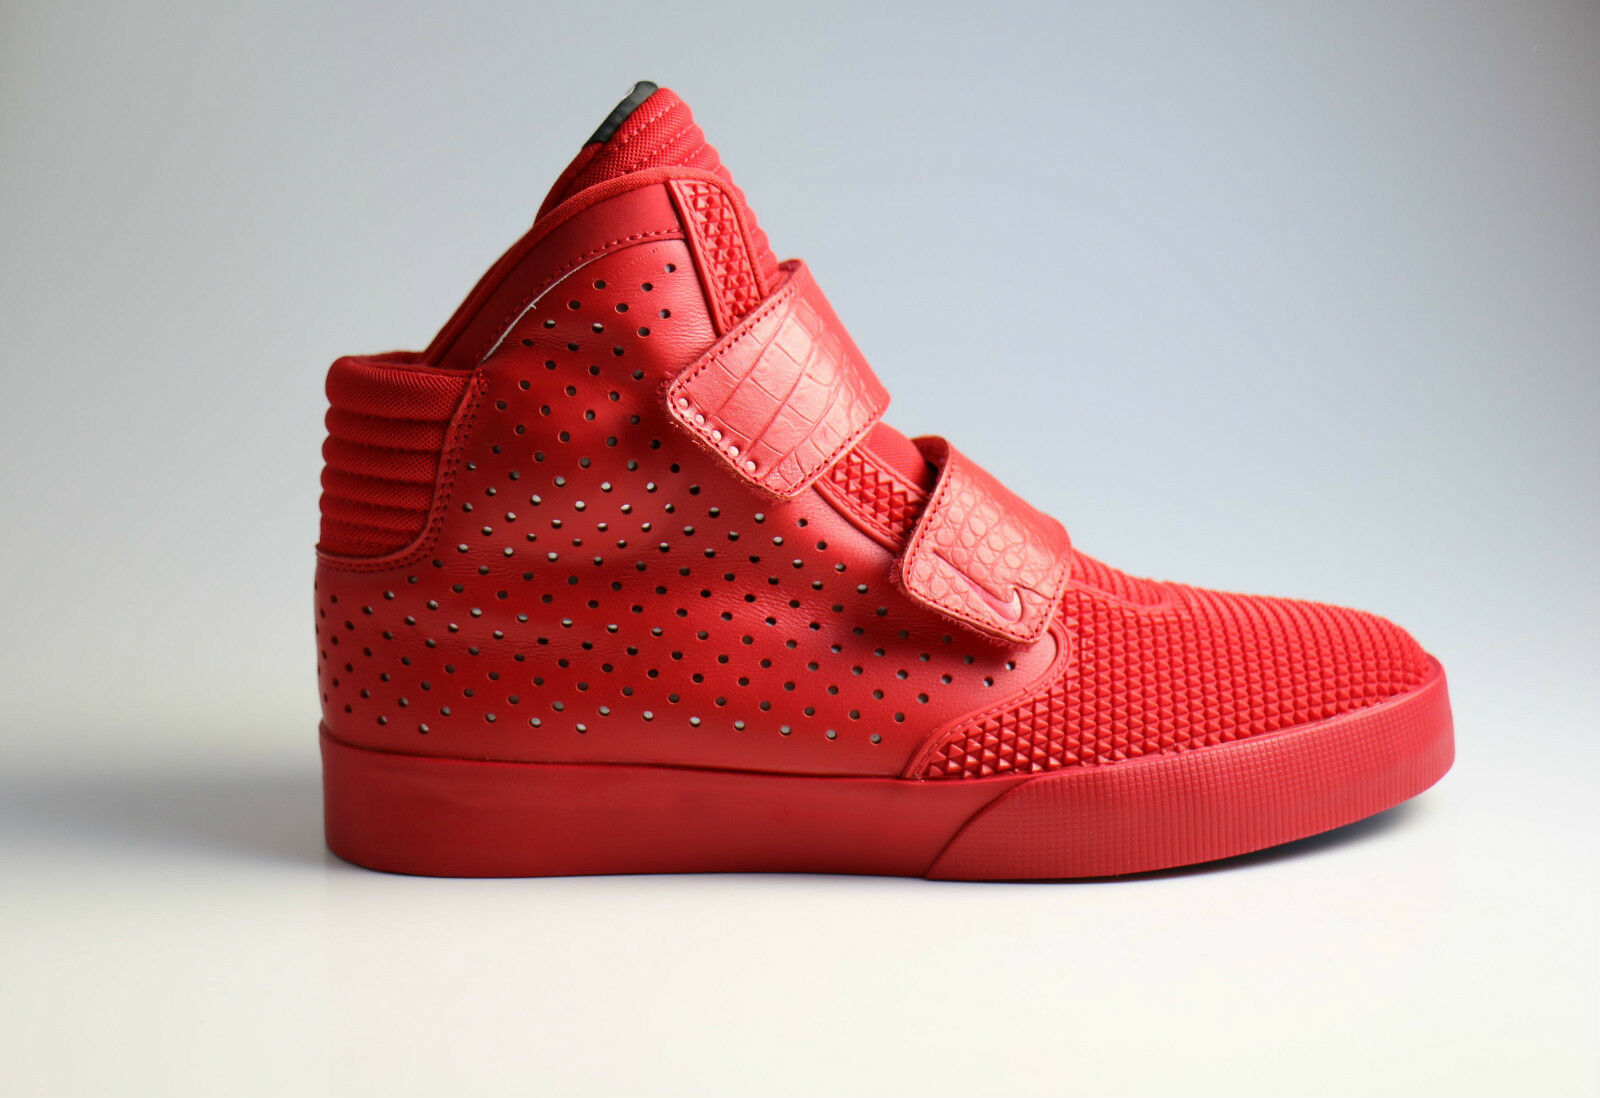 Nike Flystepper 2k3 Red 40 40,5 41 42 42,5 43 44 44,5 45 46 7 8 9 9,5 10 11 12